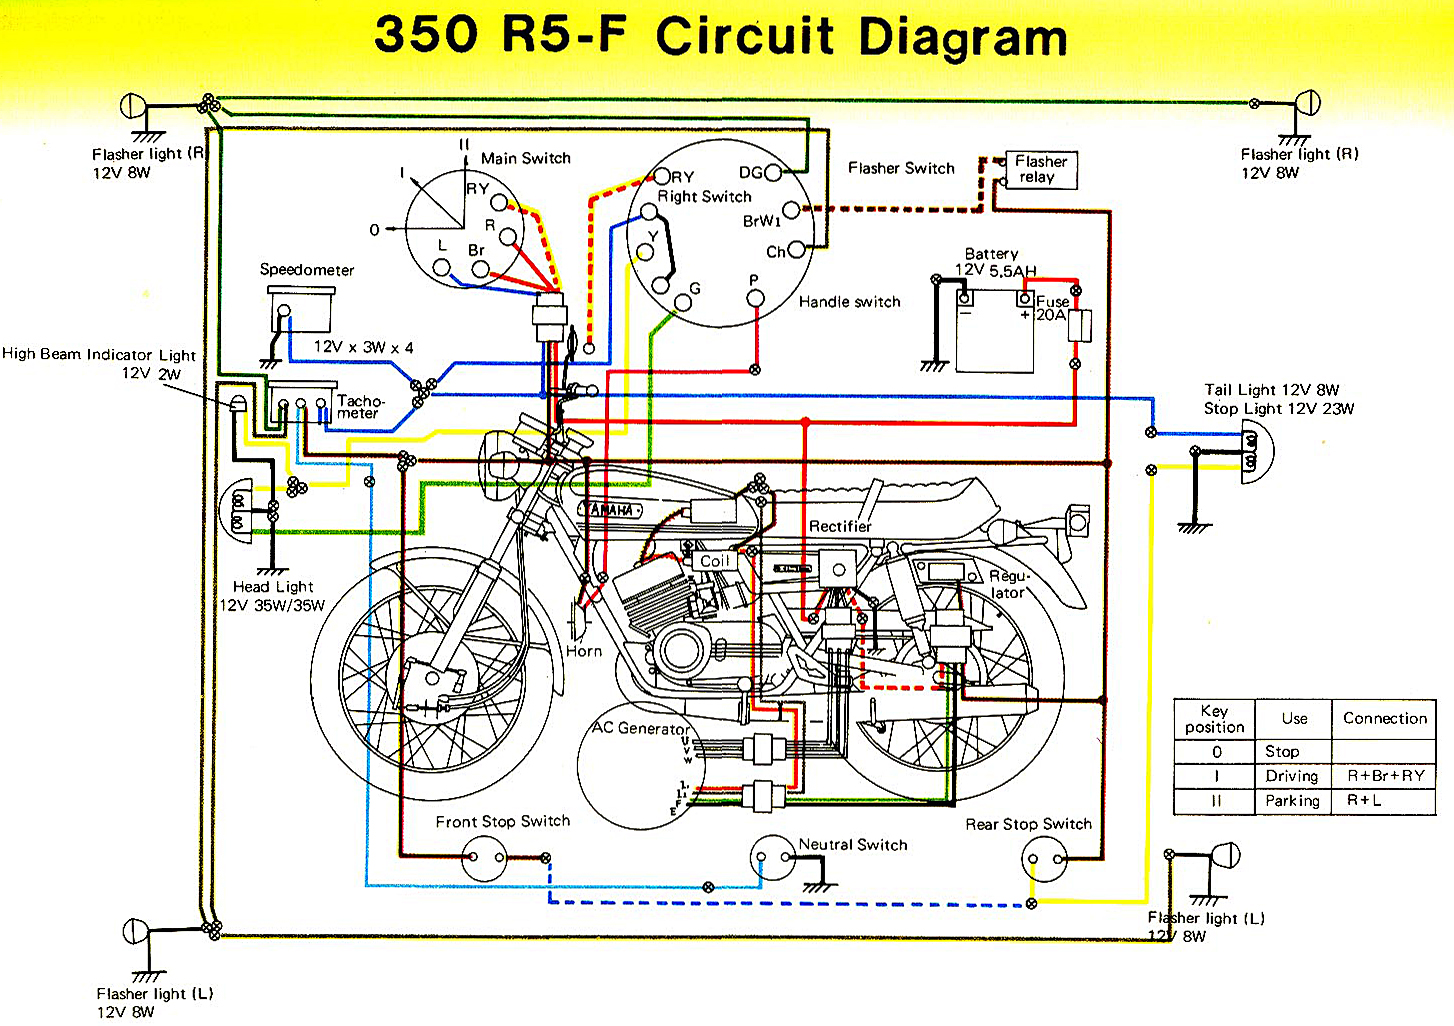 hight resolution of yamaha r5 wiring diagram wiring diagrams yamaha wiring color chart yamaha r5 r5 wiring diagrams yamaha